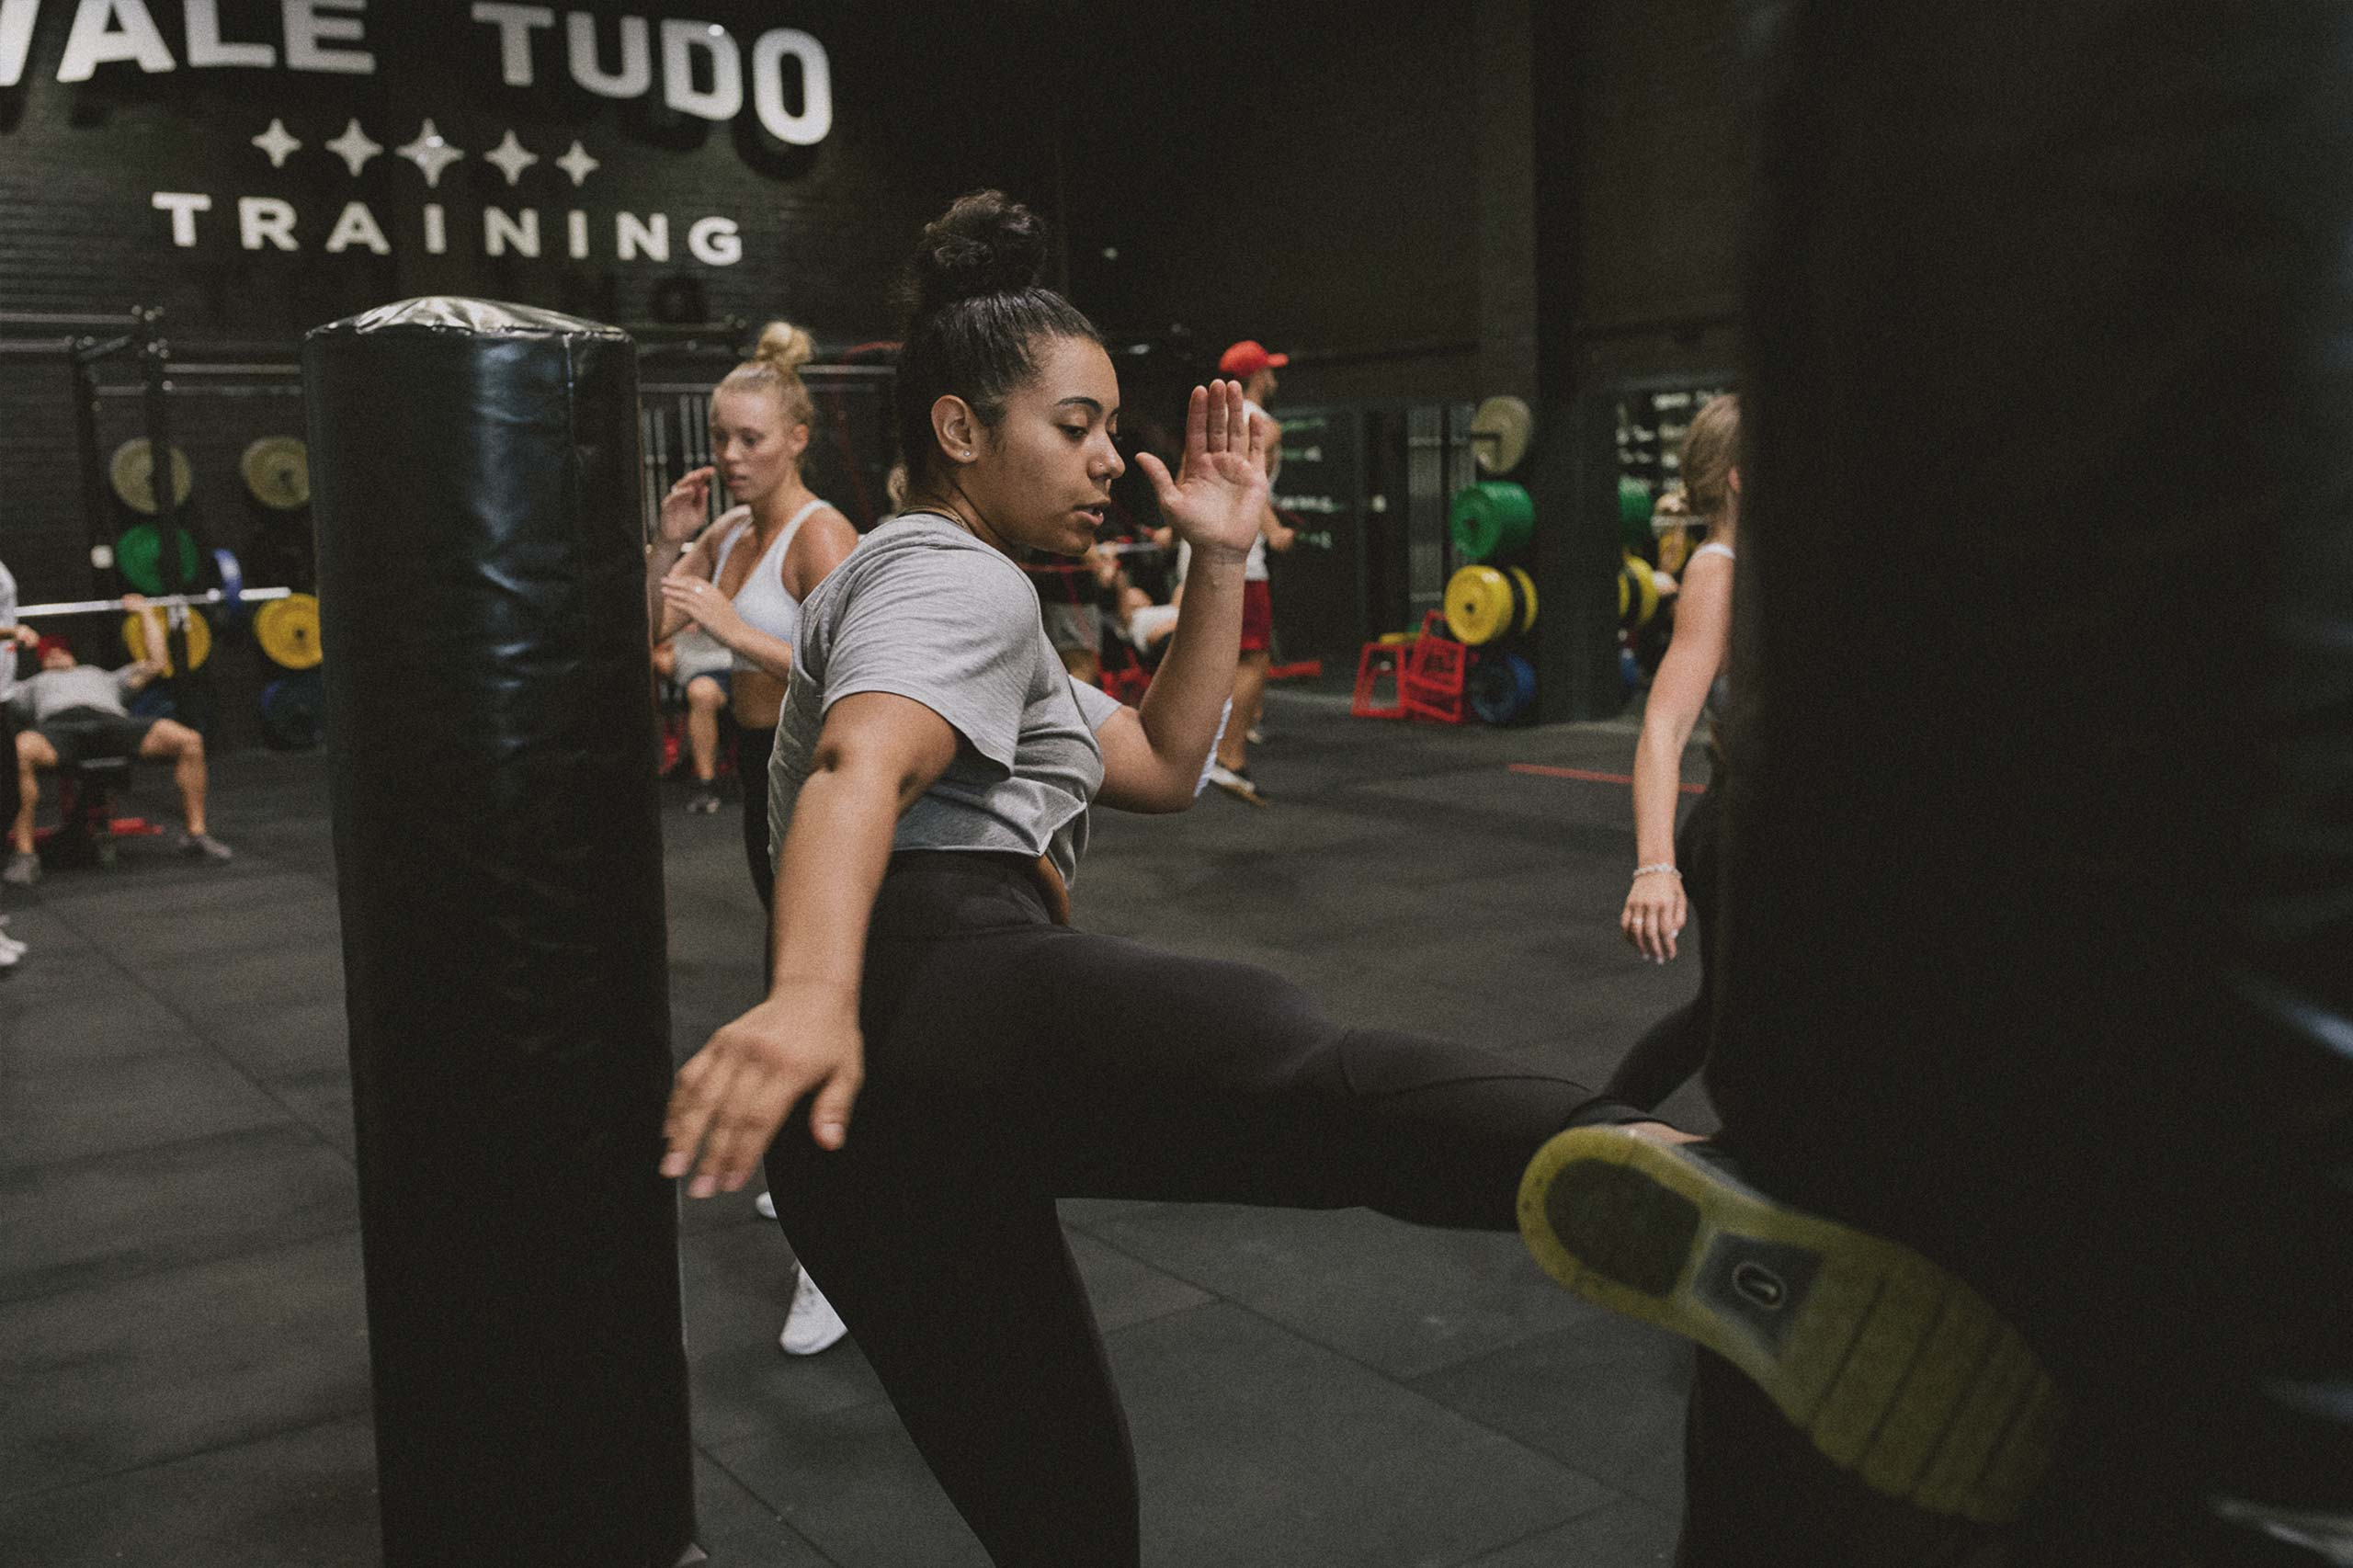 female athlete training kickboxing and mixed martial arts